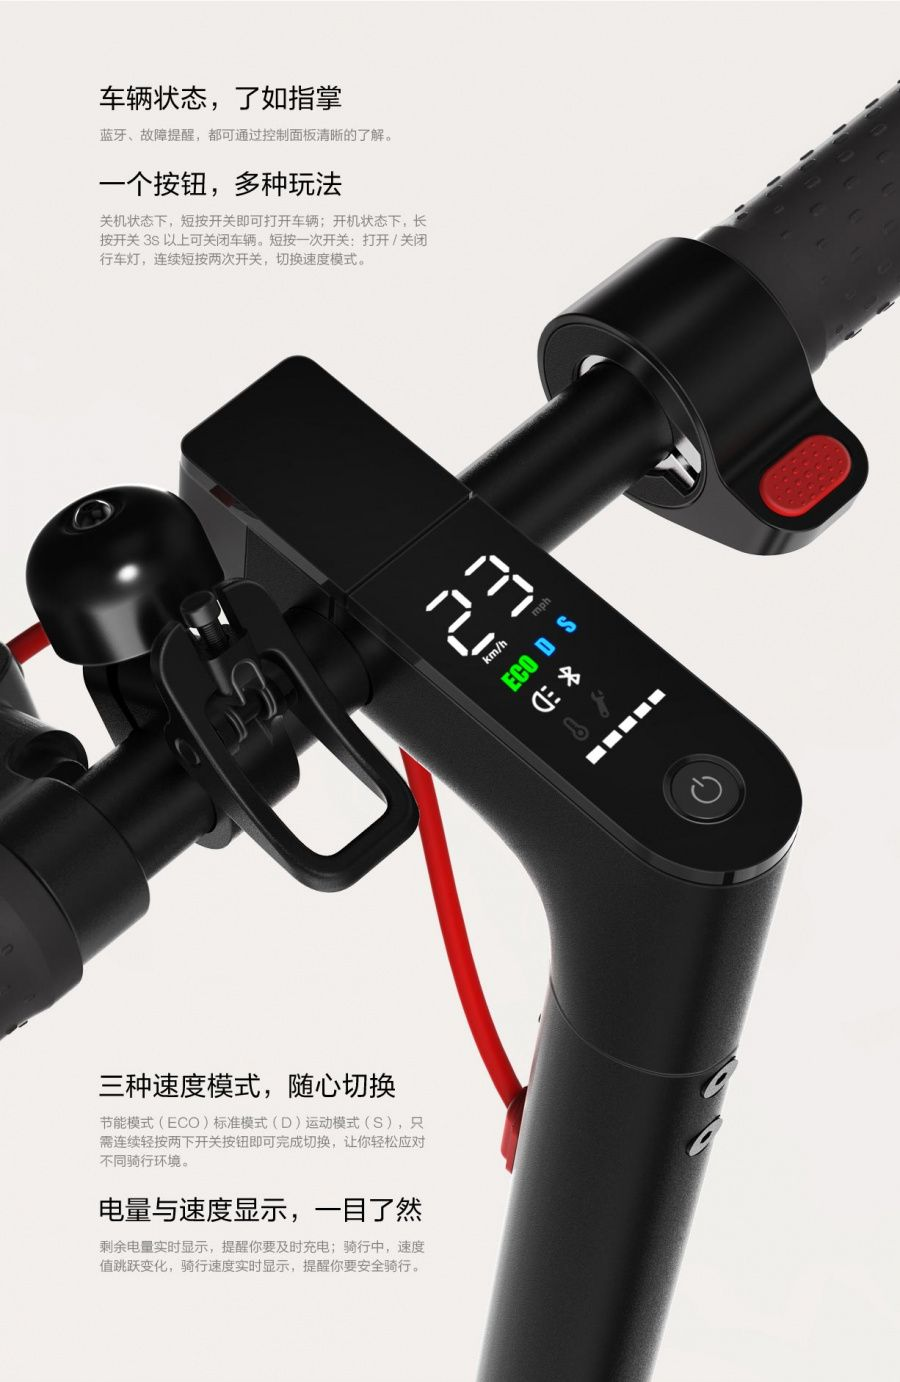 xiaomi m365 pro version is available to order – electric scooter